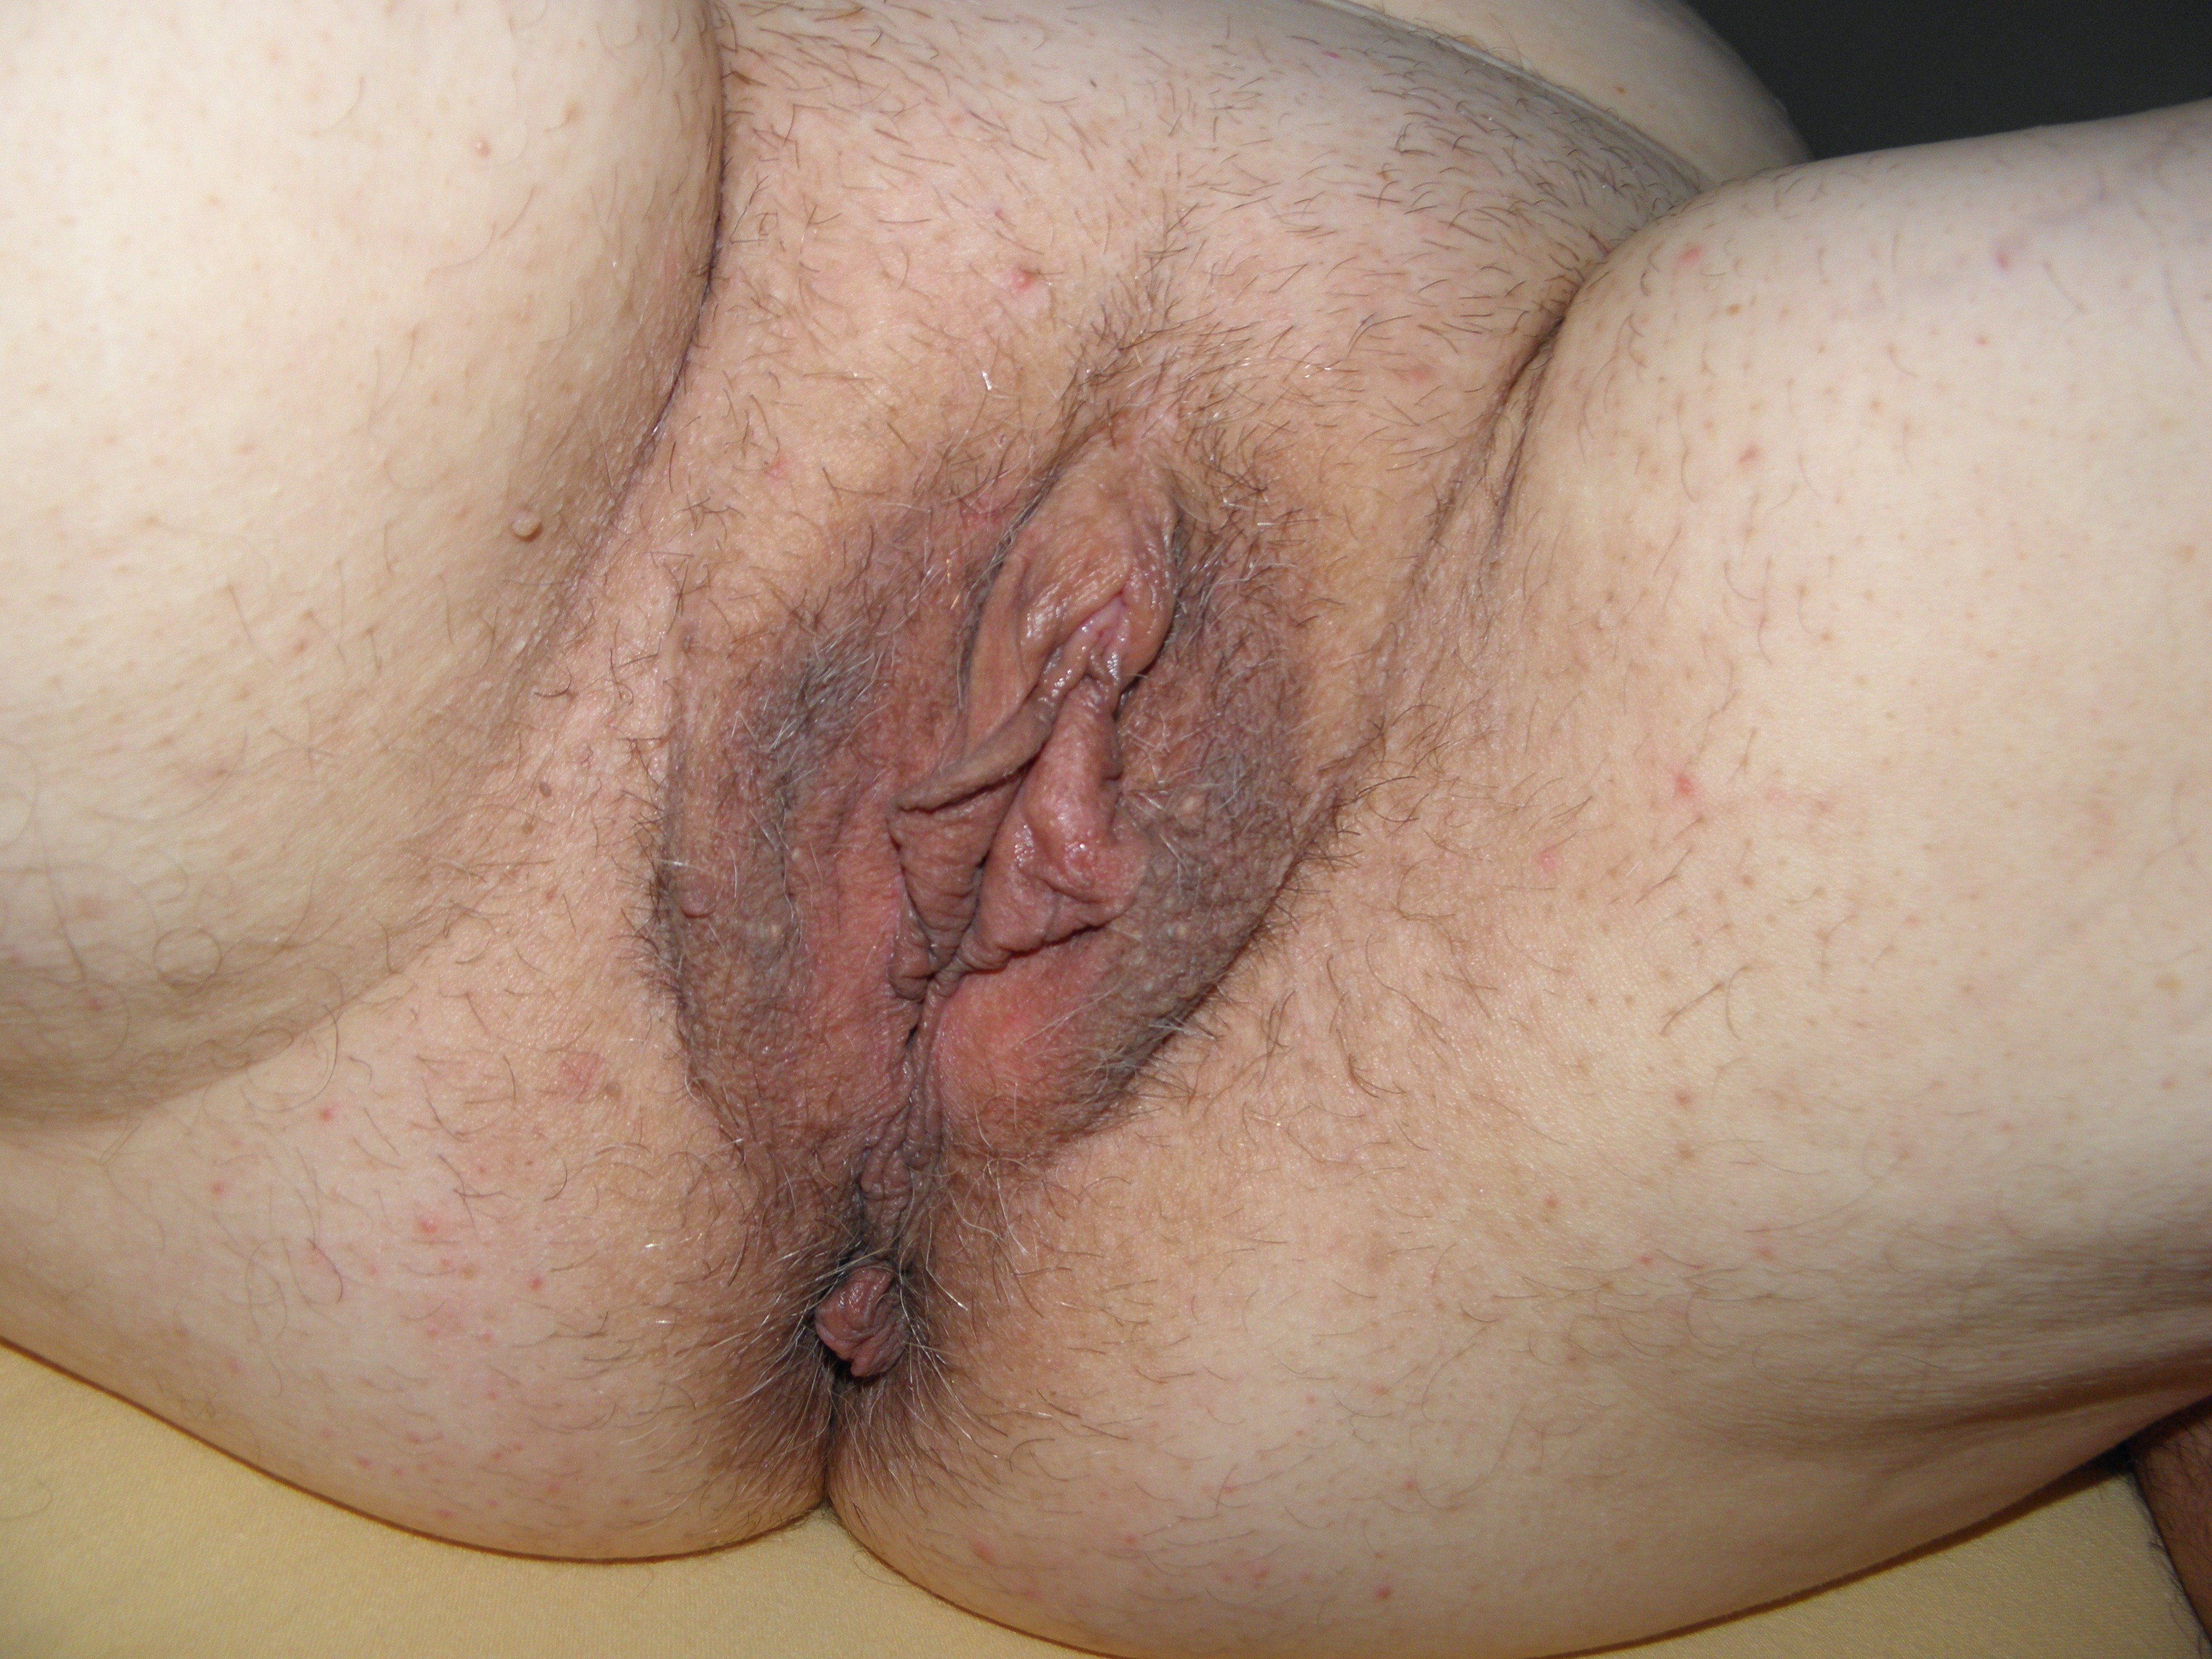 Trimmed Fat Meaty Vagina  Pussy Pictures - Asses - Boobs -5599